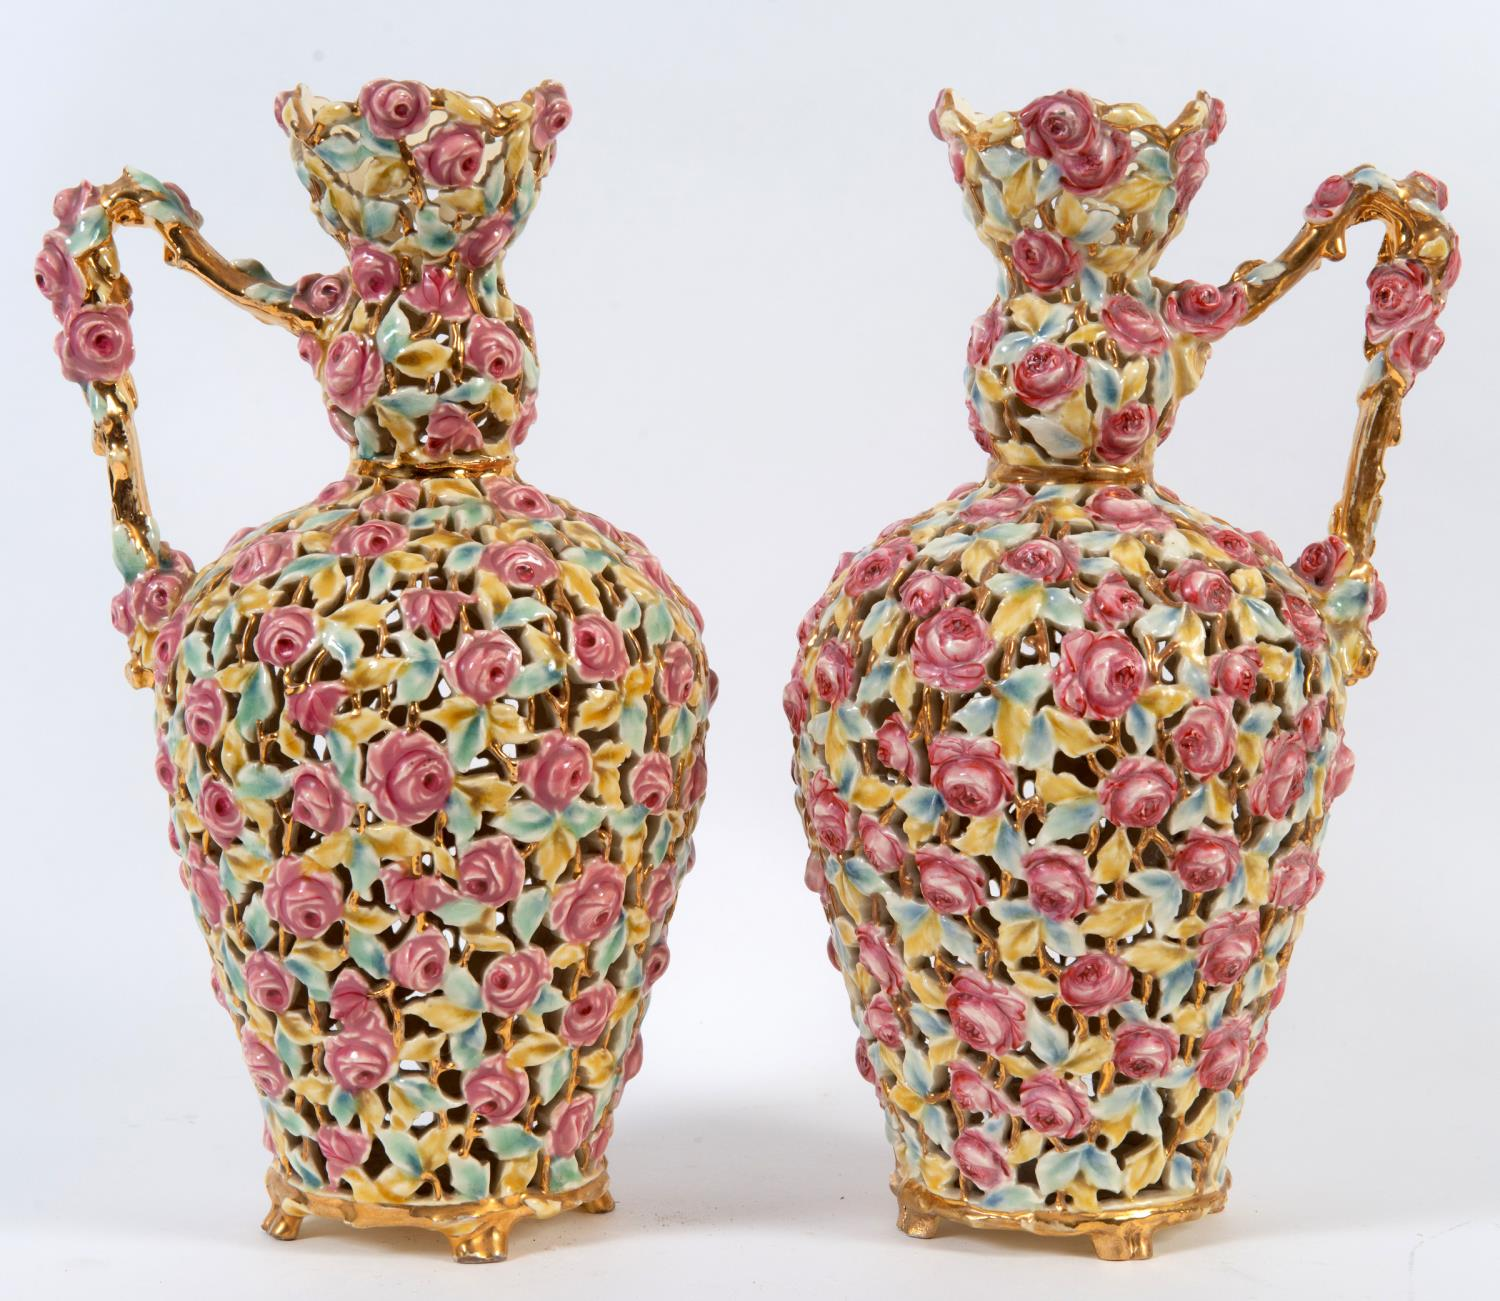 Lot 57 - A pair of Zsolnay reticulated vases with handles, decorated flowers and foliage, on four splay